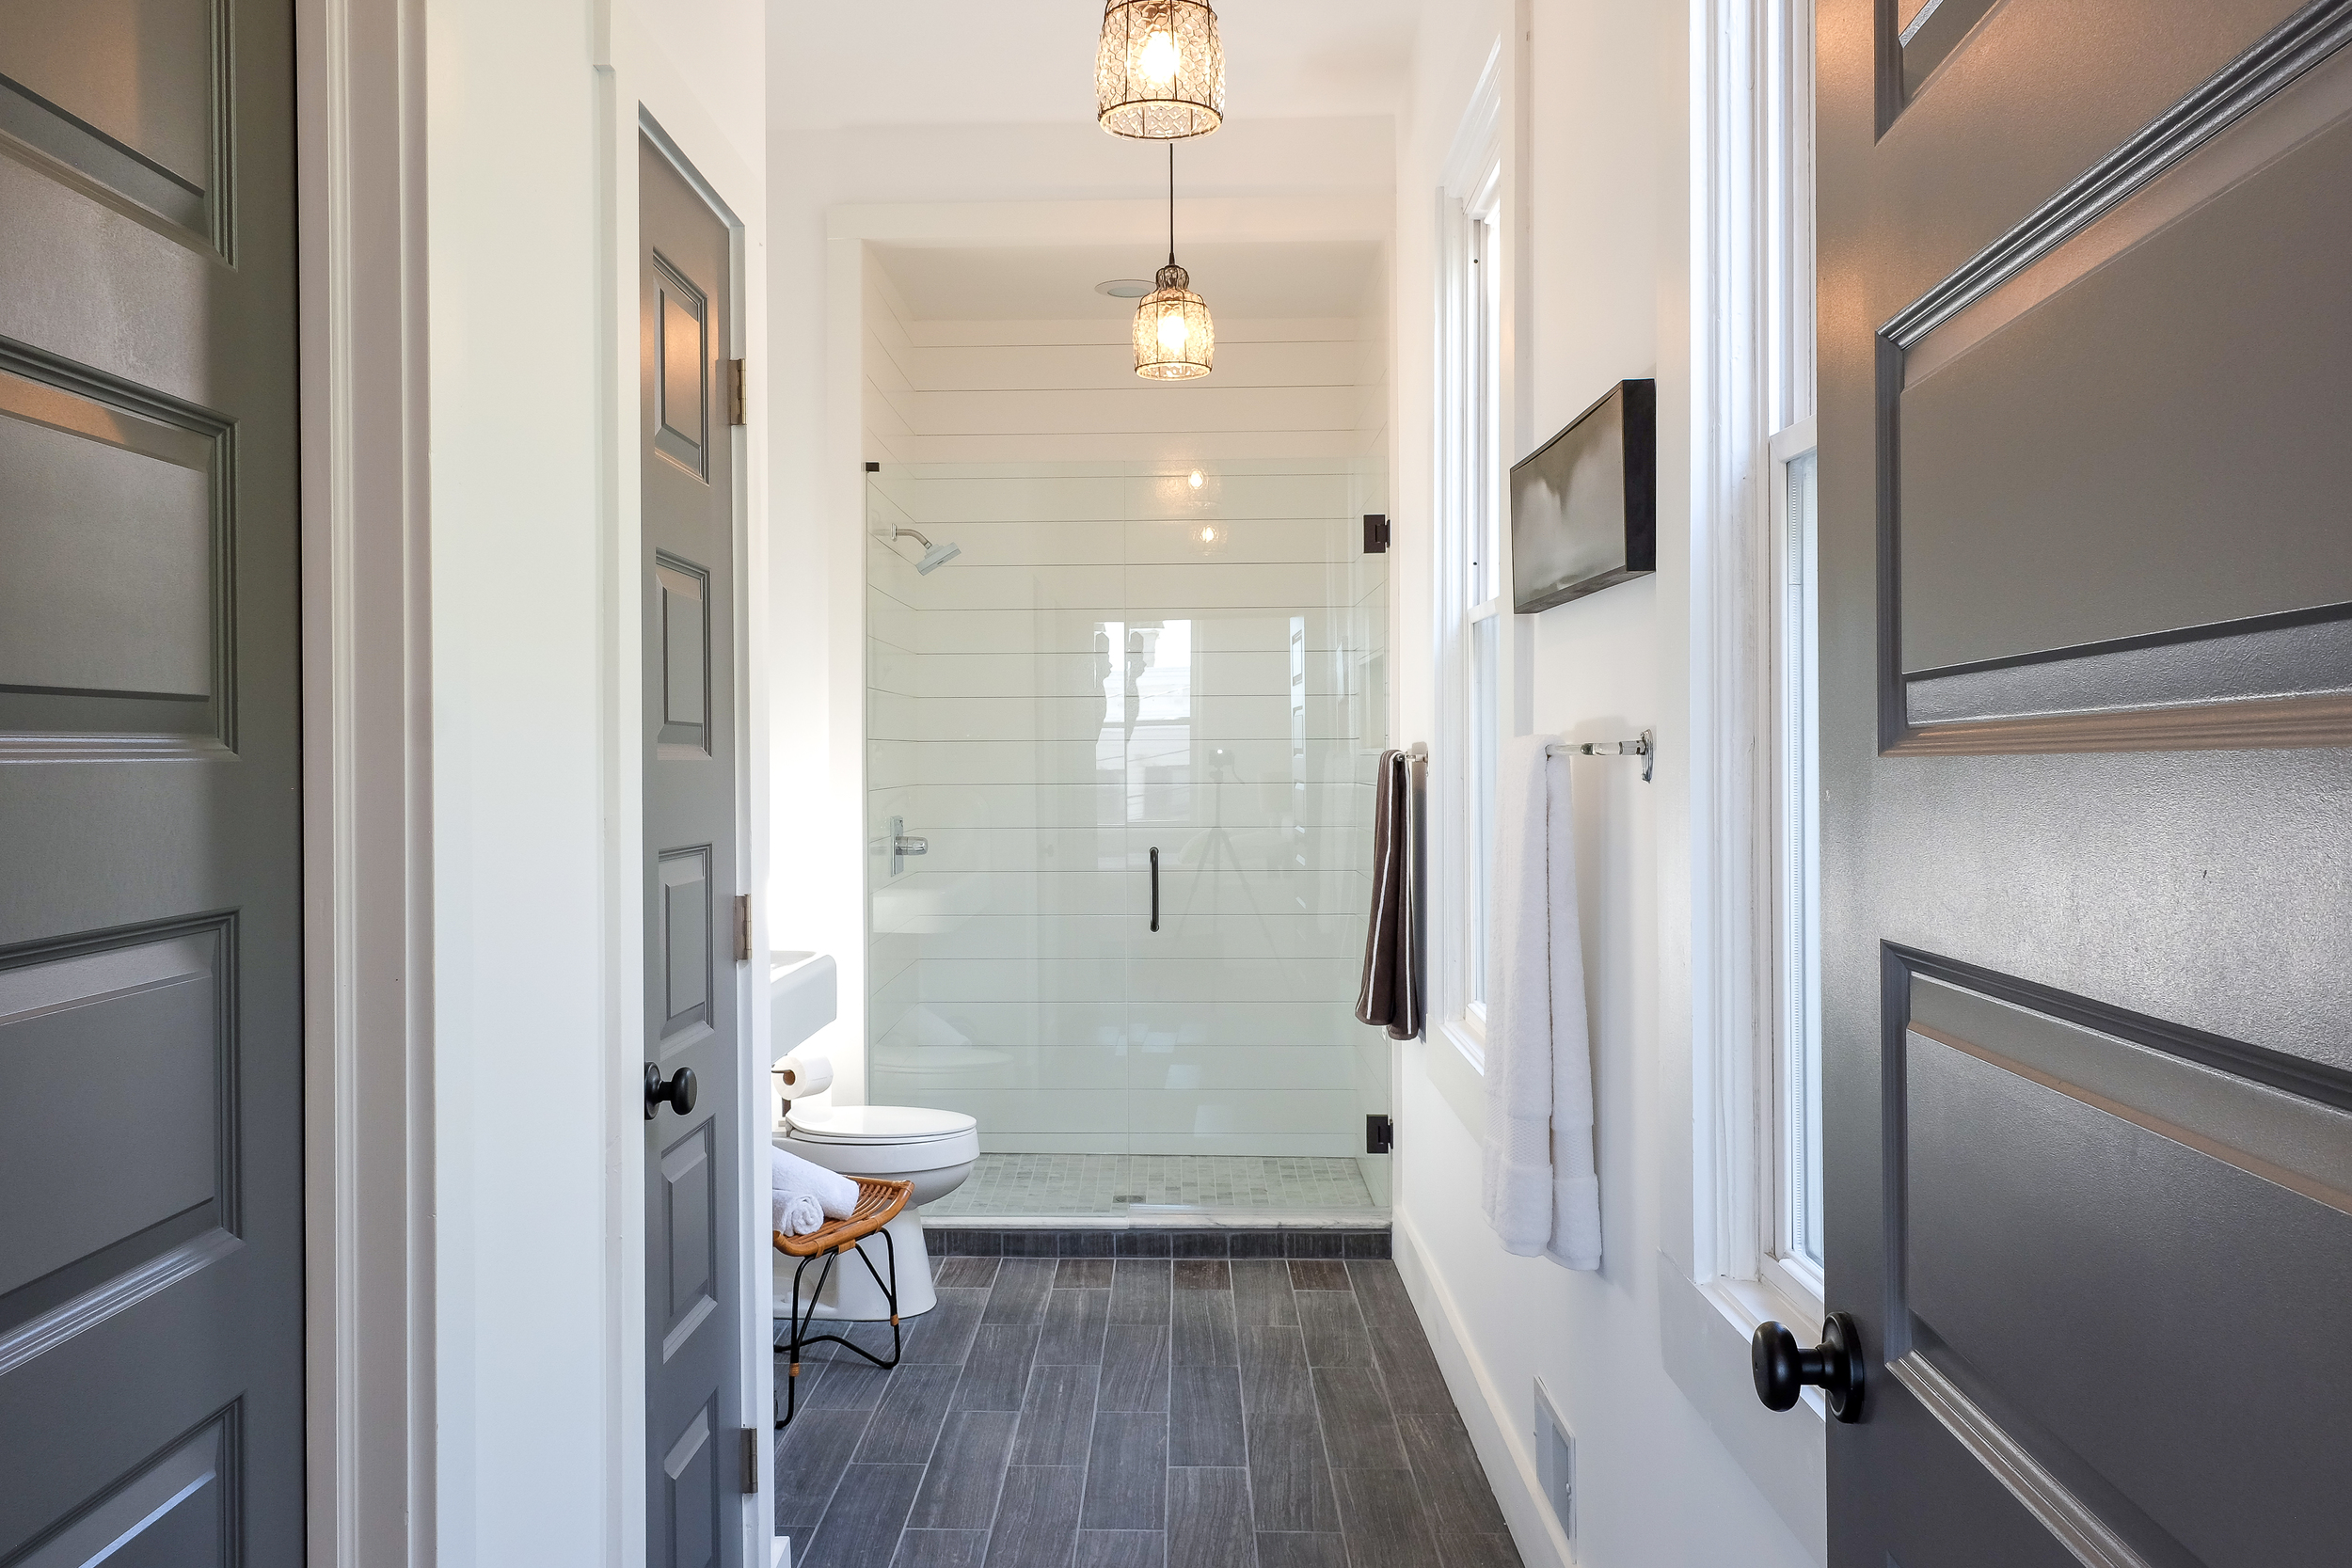 How To Install Shiplap In A Shower And Be The Coolest